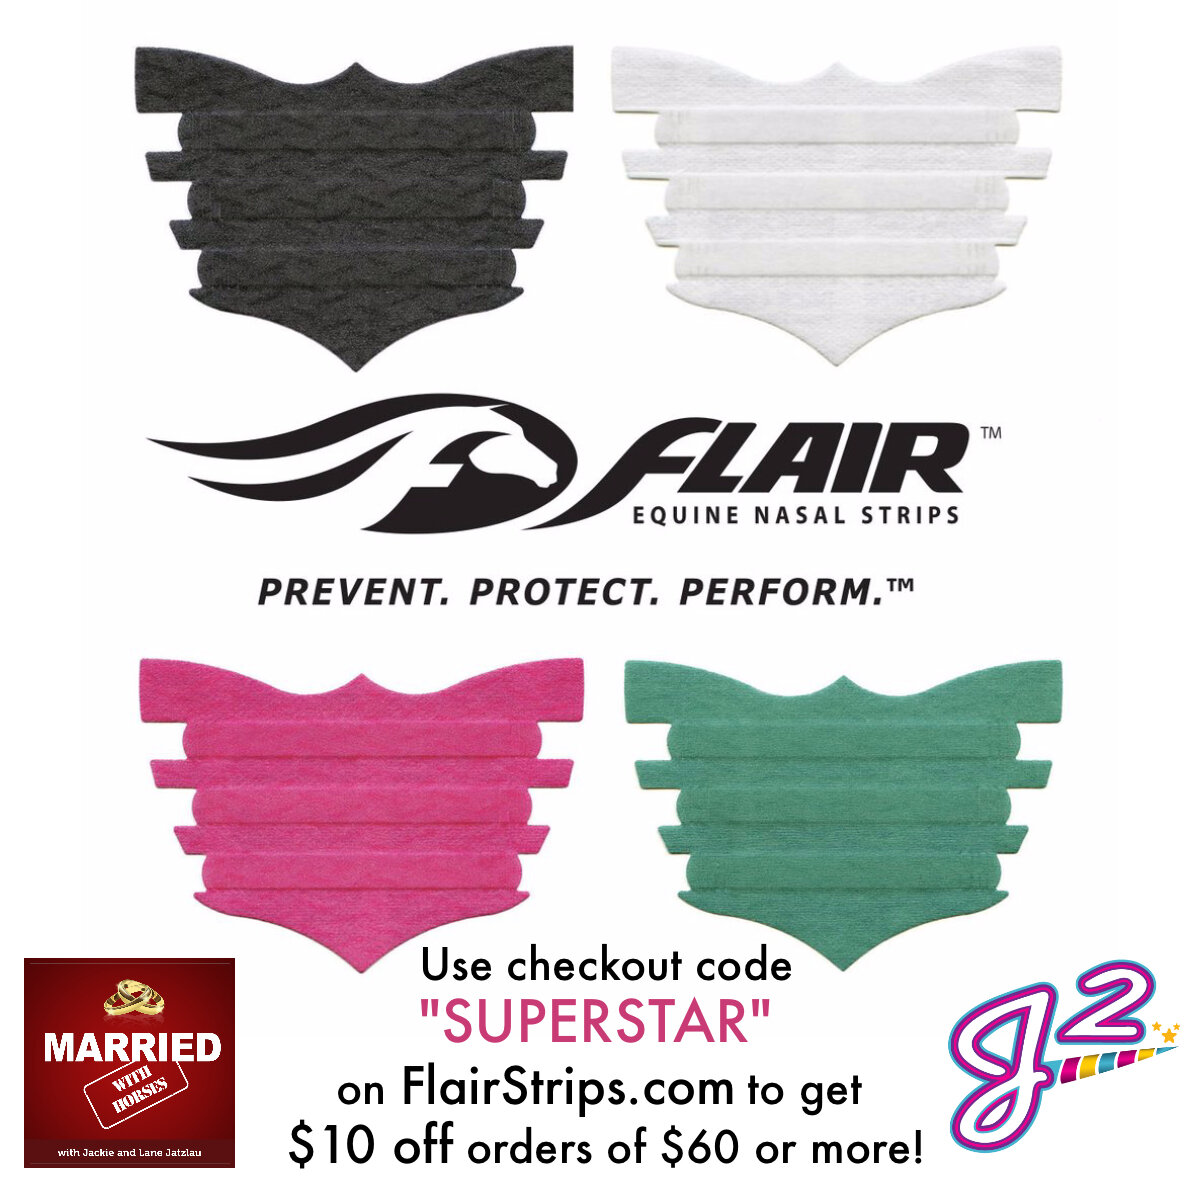 Flair Strips - Use checkout code SUPERSTAR to get $10off orders of $60 or more on FlairStrips.com!Developed by veterinarians, FLAIR® Strips are drug-free, self-adhesive nasal strips that promote optimum health of equine athletes, in all disciplines and every level of competition. The Strips gently support the soft tissues over the nasal passages (the narrowest part of the upper airway) and reduce airway resistance and improve airflow when your horse needs oxygen most.Be sure to check out the episode of MARRIED WITH HORSES with the creator of the Flair Strip, Dr. Jim Chiapetta and hear all about the benefits of these phenomenal strips!